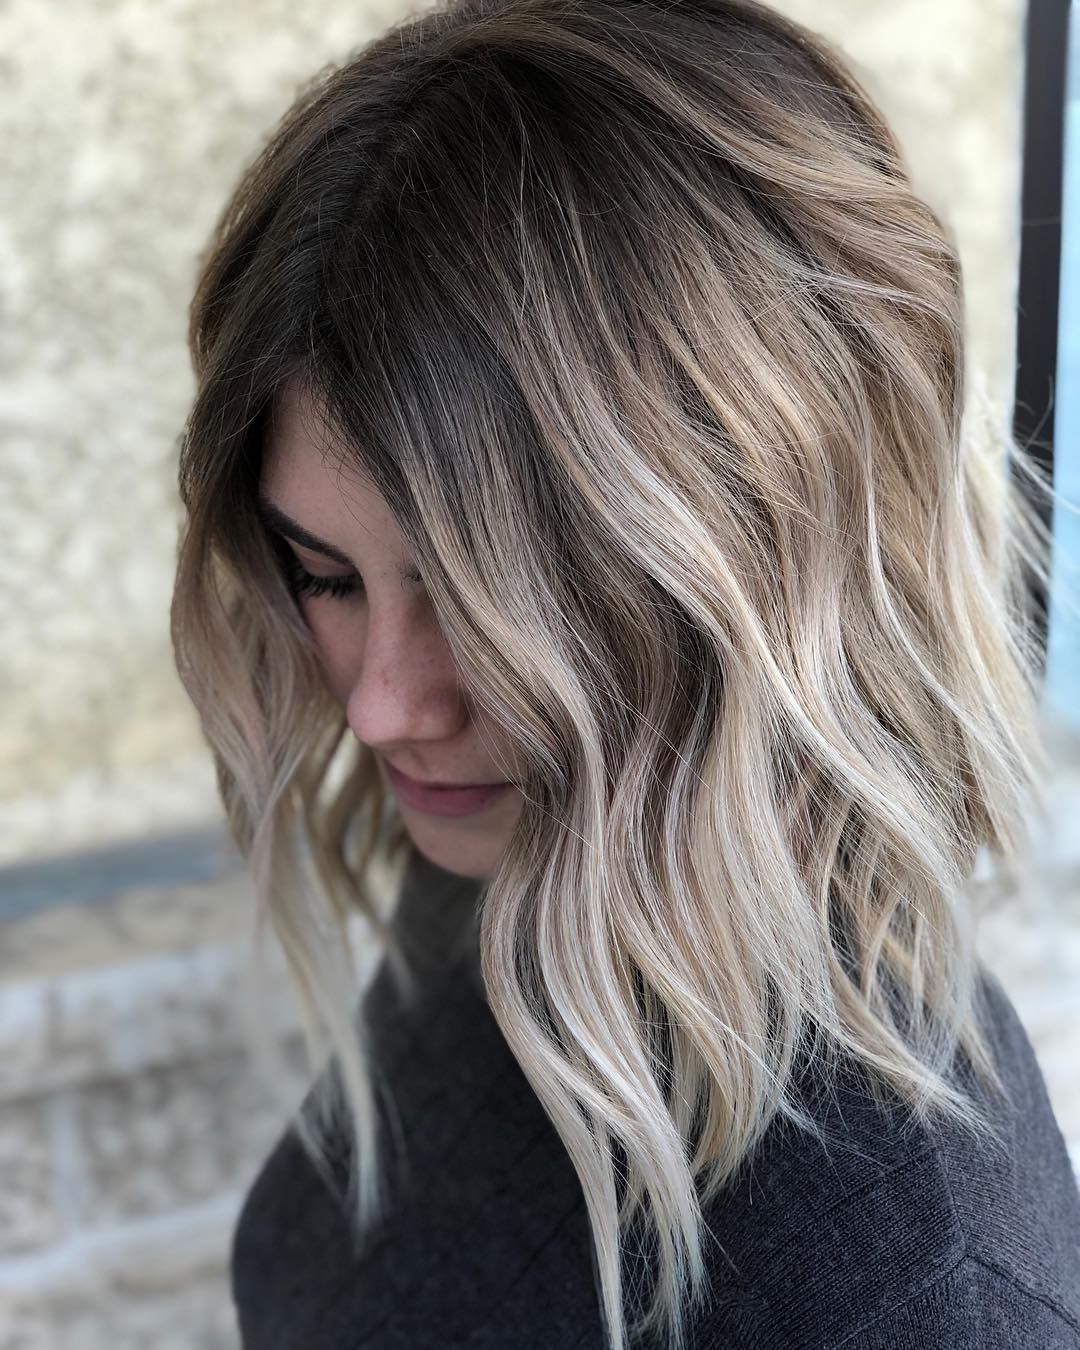 10 Balayage Ombre Hair Styles For Shoulder Length Hair, Women